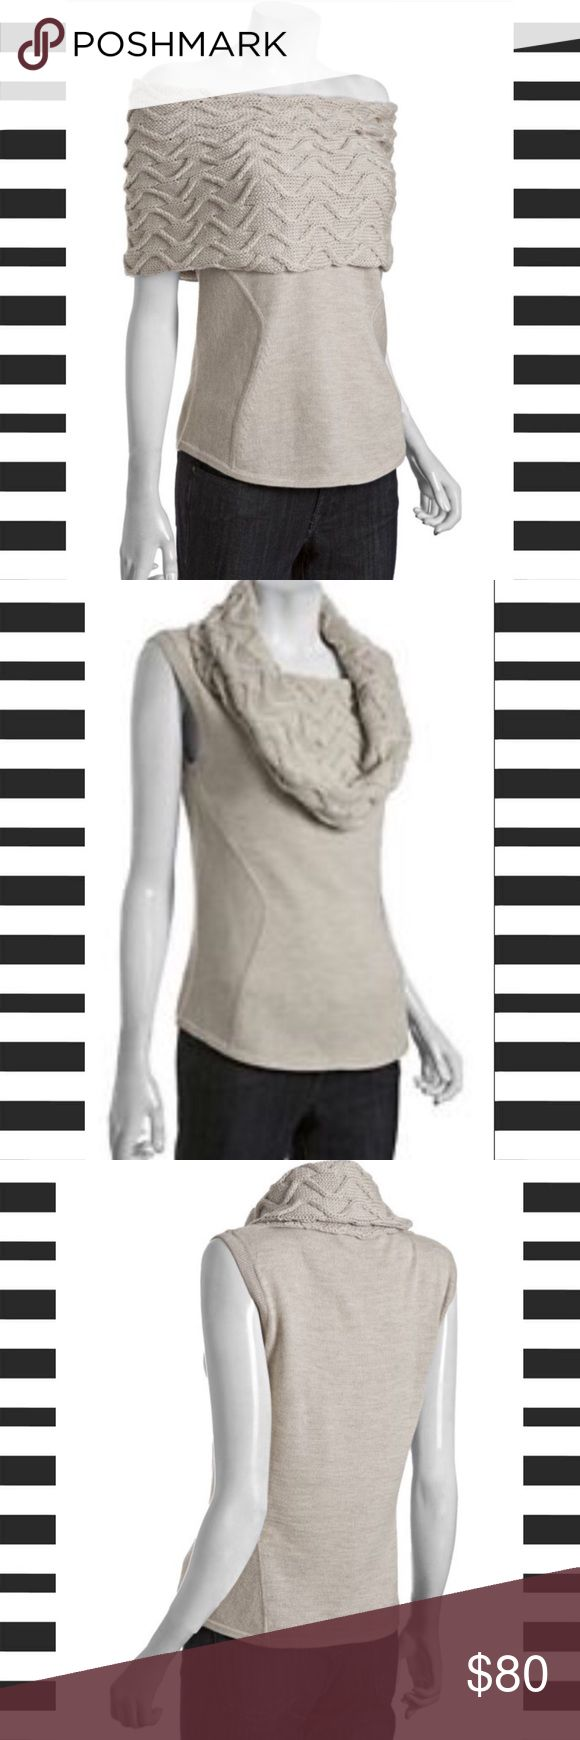 Women's Wool Roni Sleeveless Cowl Neck Sweater This is a great fall sweater.  Women's Wool Roni Sleeveless Cowl Neck Sweater.  NWT!  Get a jumpstart on building your fall wardrobe. 301-01 Elie Tahari Sweaters